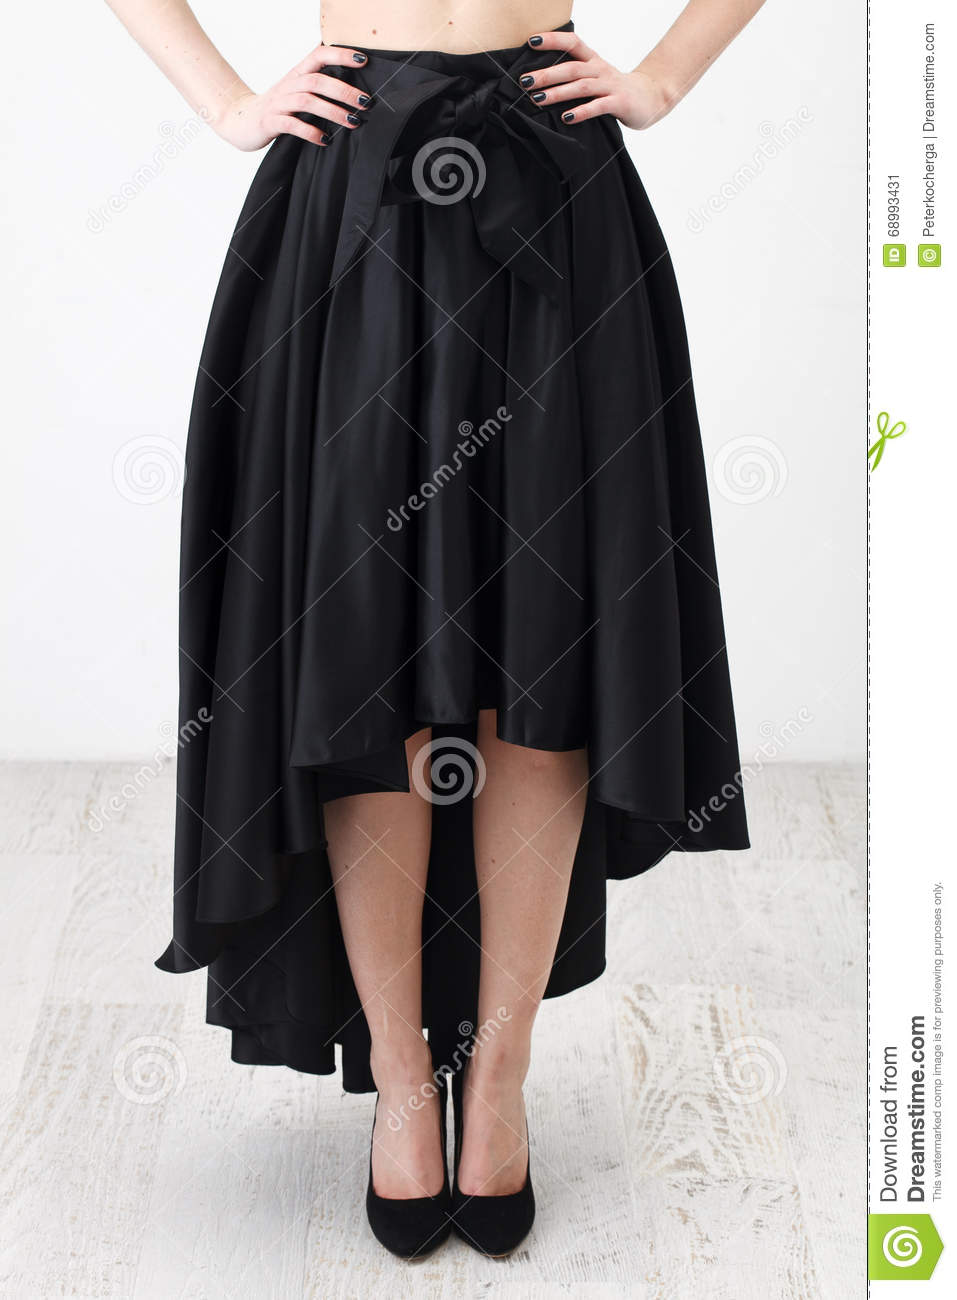 7b8c70ccd8 Fashionista In Black Shirt And Skirt Stock Image - Image of dress ...